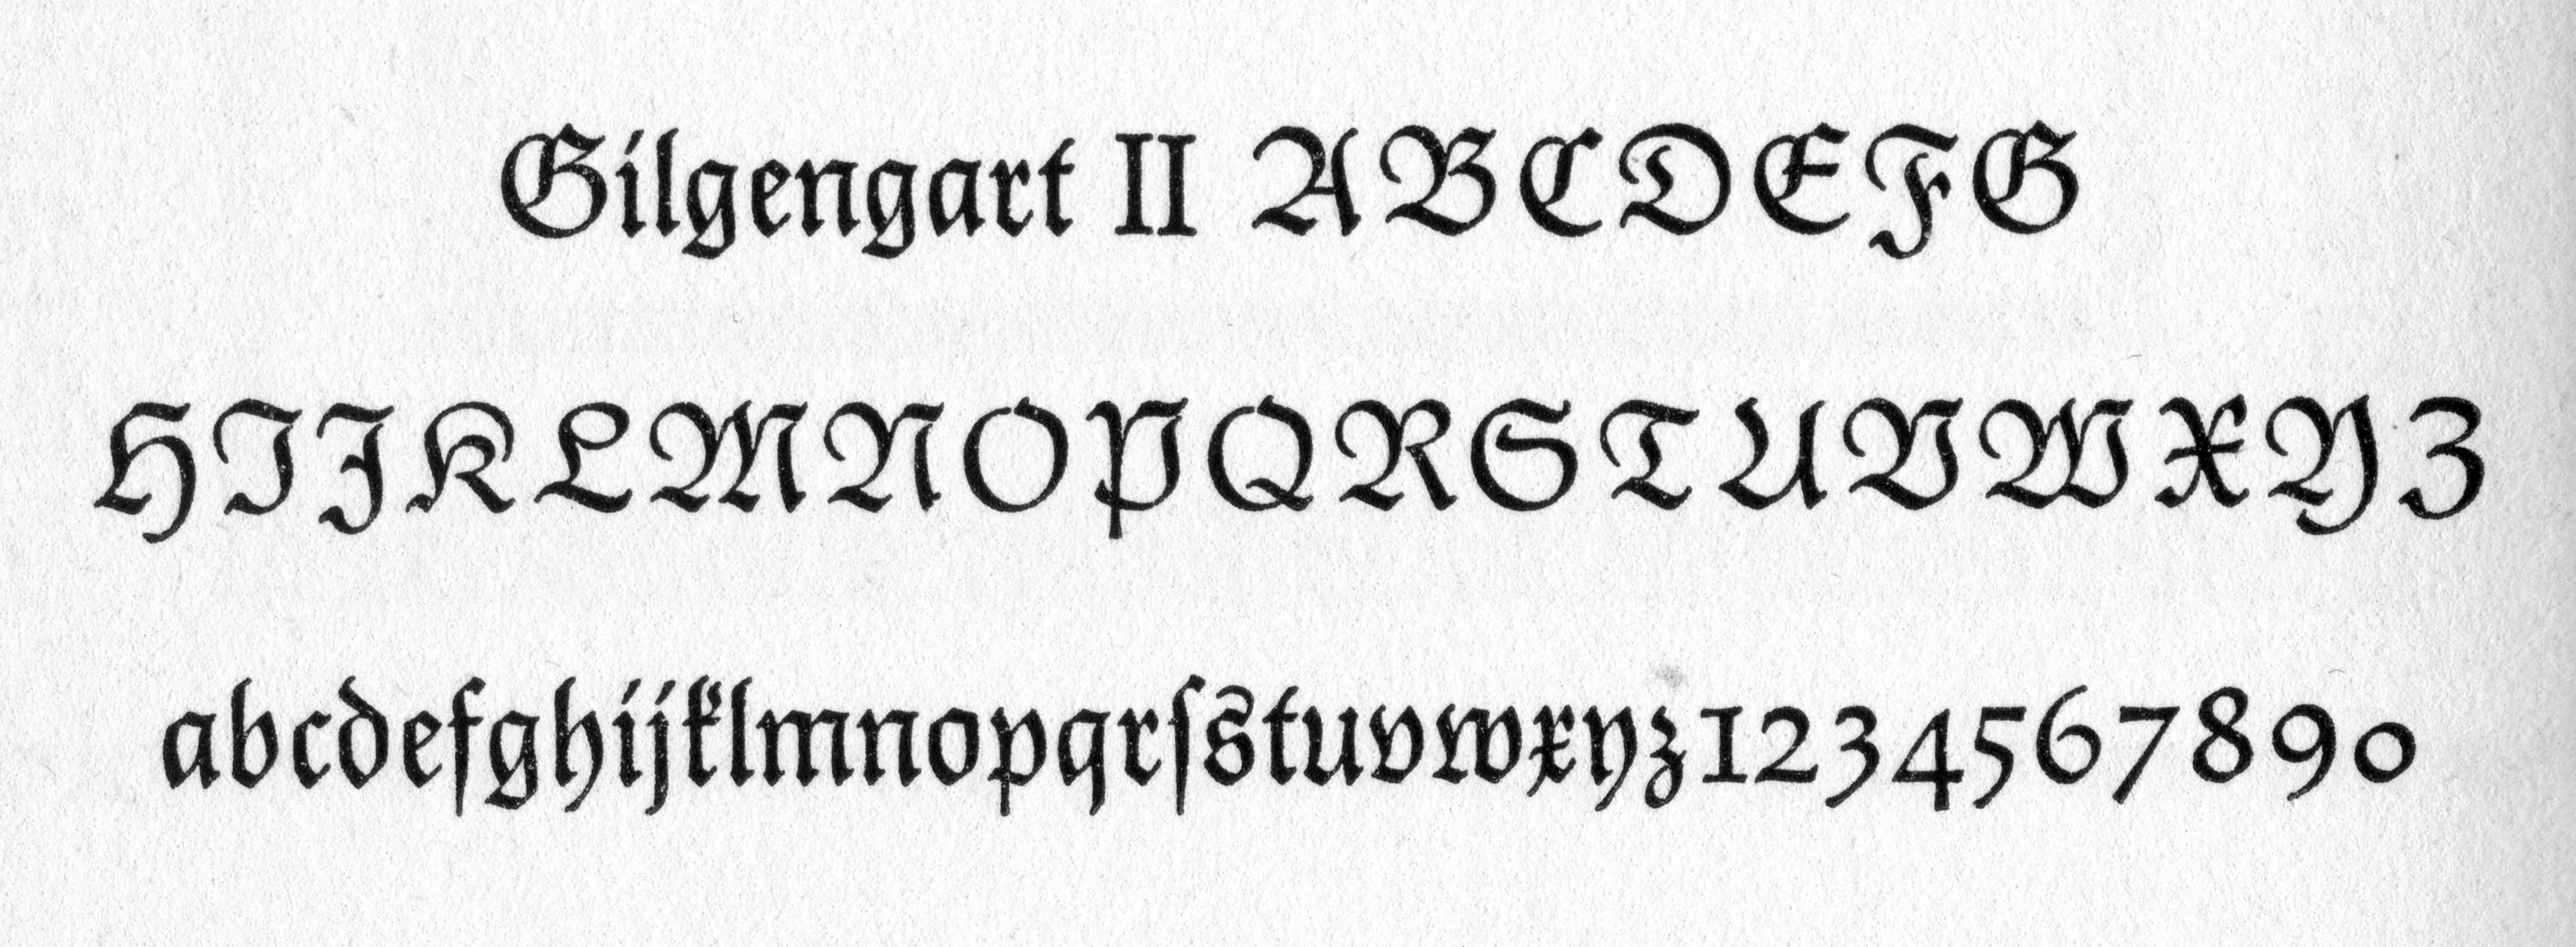 Gilgengart II. Detail from About Alphabets, p. 86.